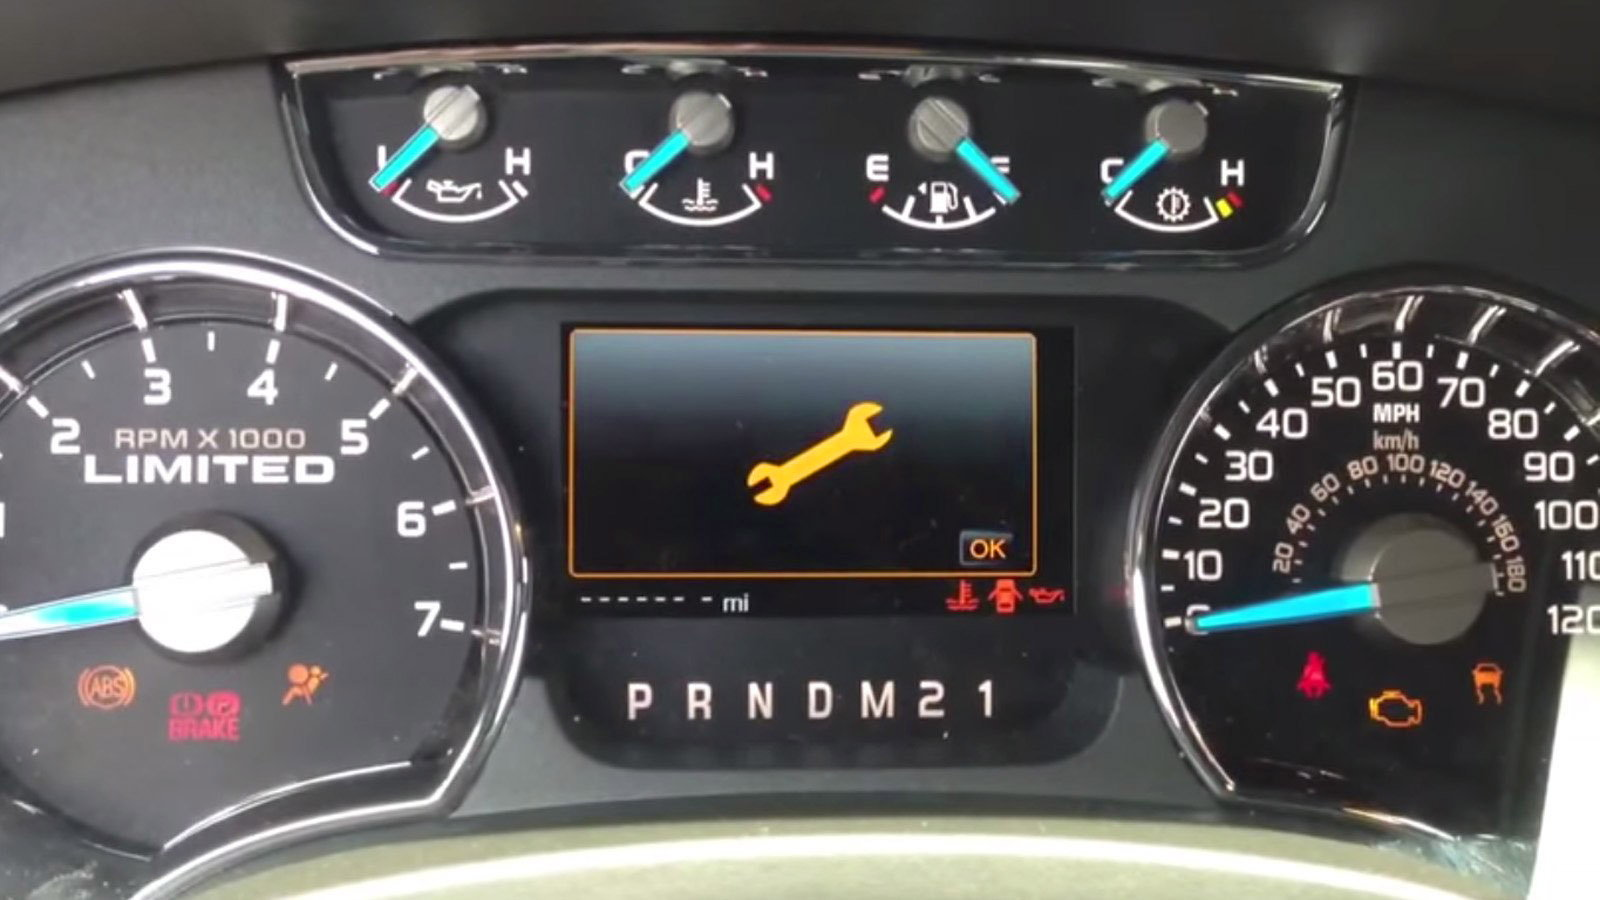 F150 F250: Why is My Transmission Fault Light On? | Ford-trucks